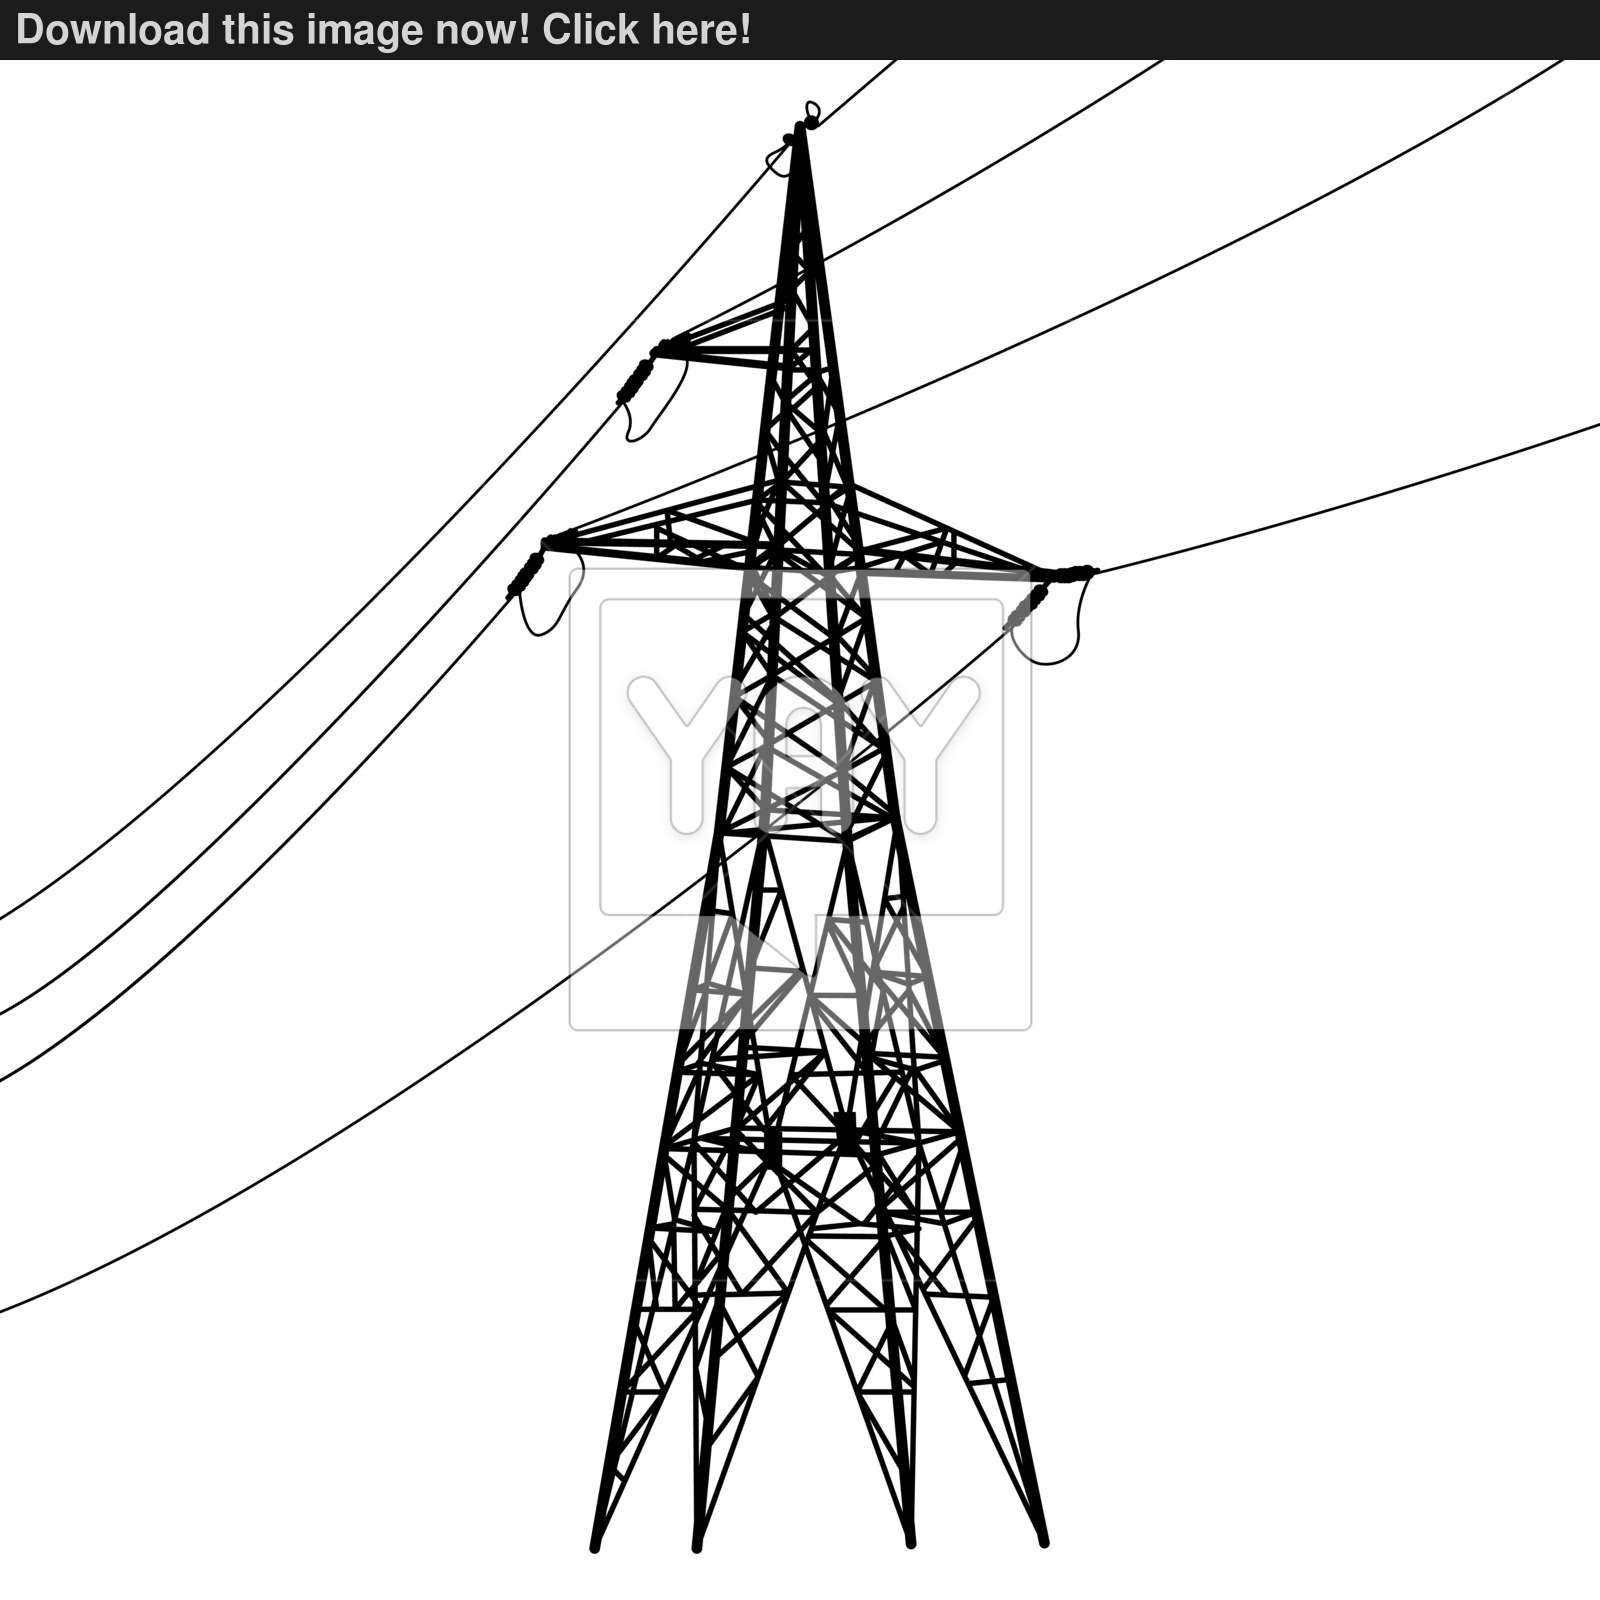 1600x1600 Silhouette Of High Voltage Power Lines. Vector